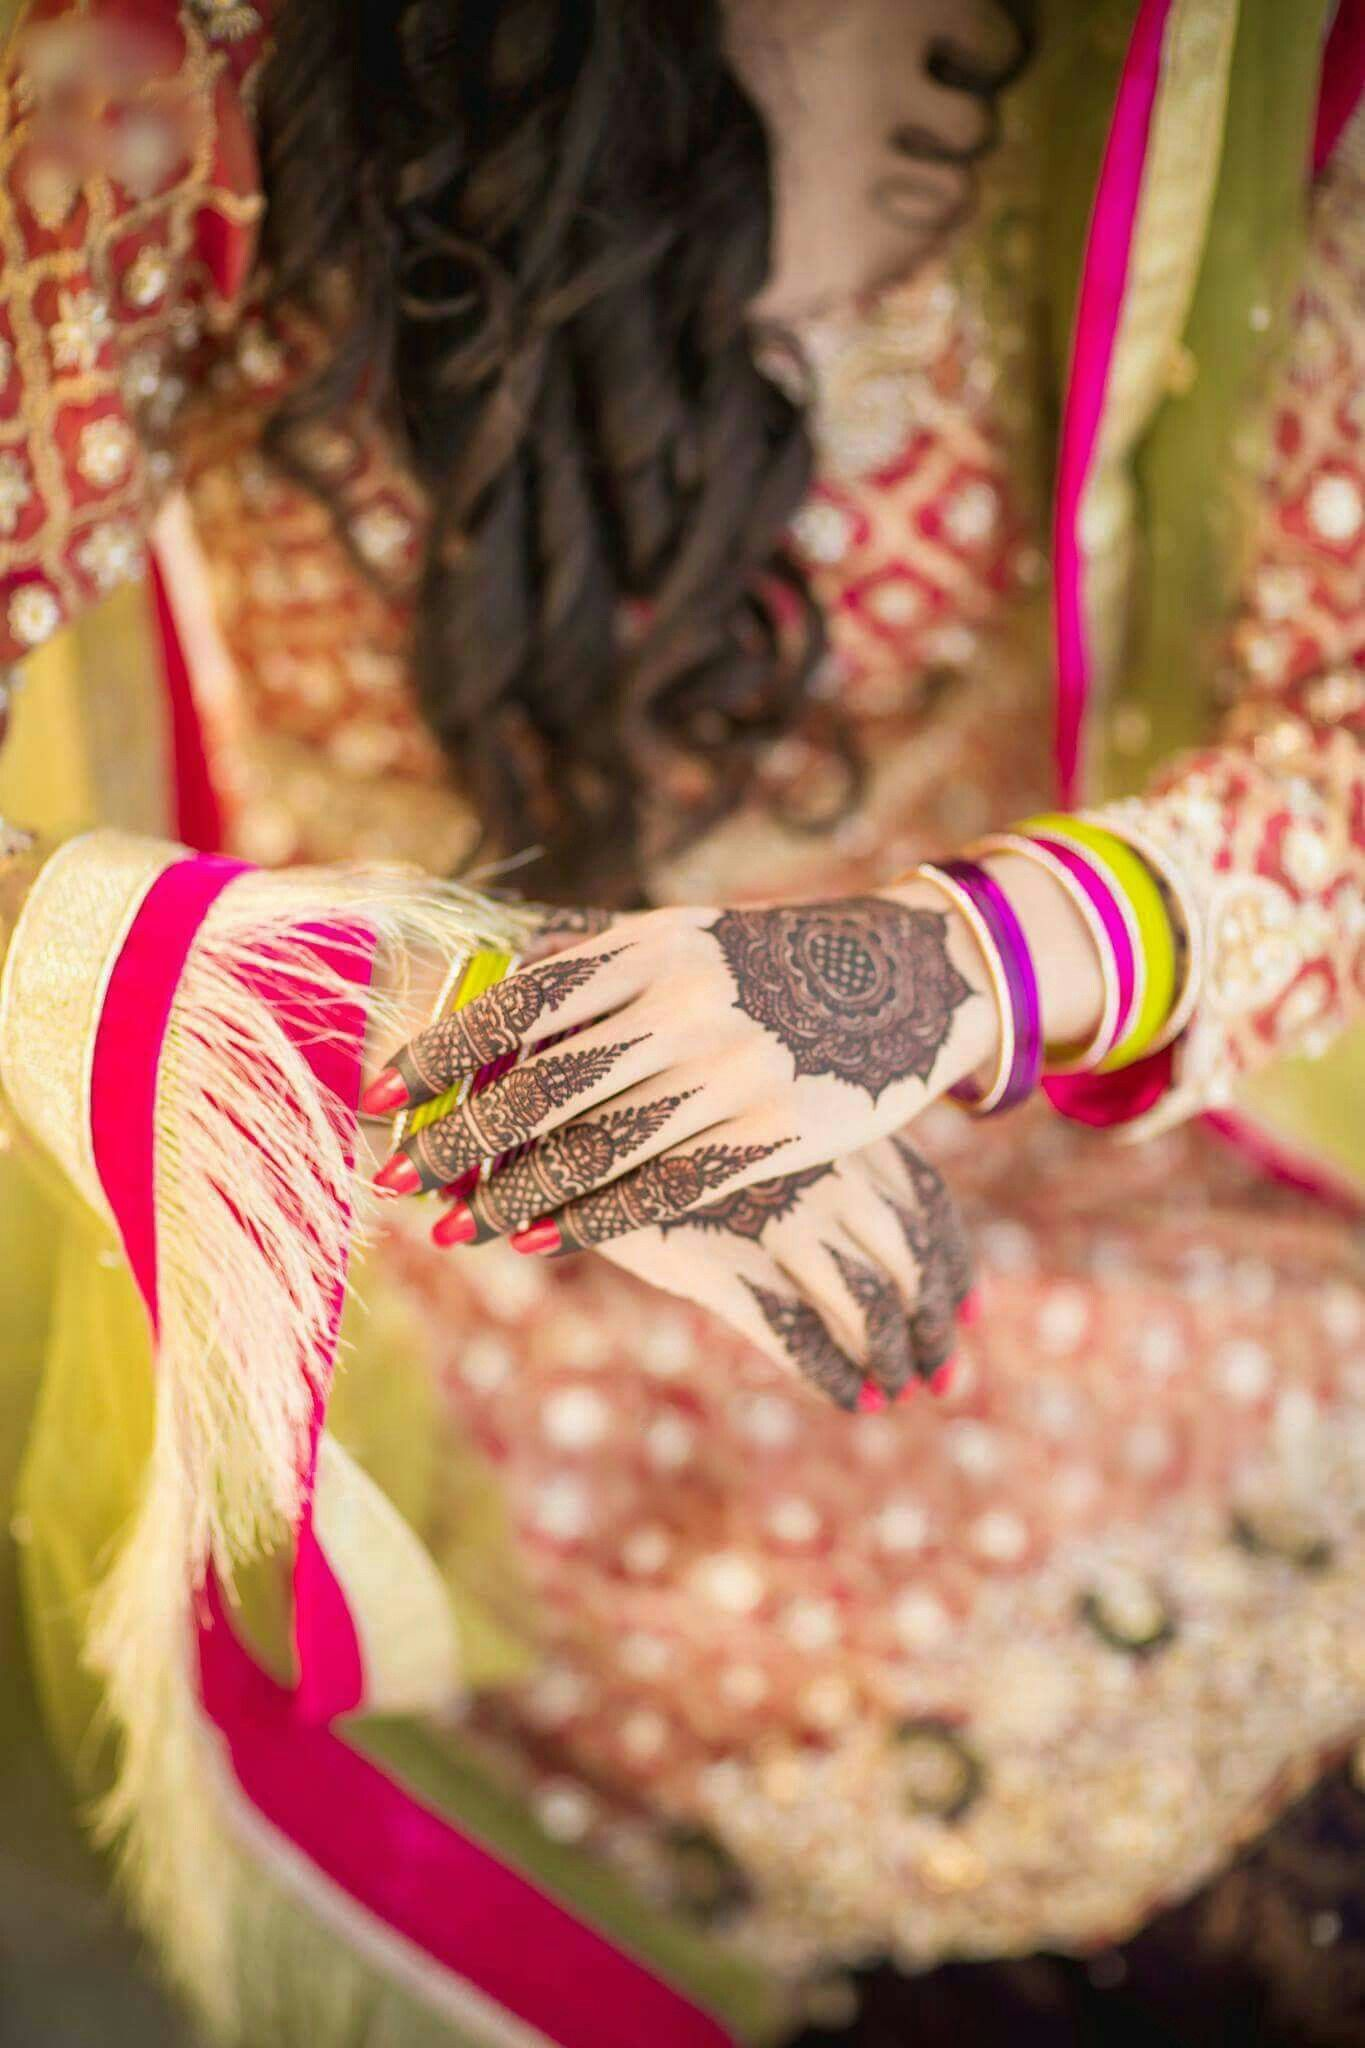 Pin mehndi and bangles display pics awesome dp wallpaper on pinterest - Beys Design Henna For More You Can Follow On Insta Love_ushi Or